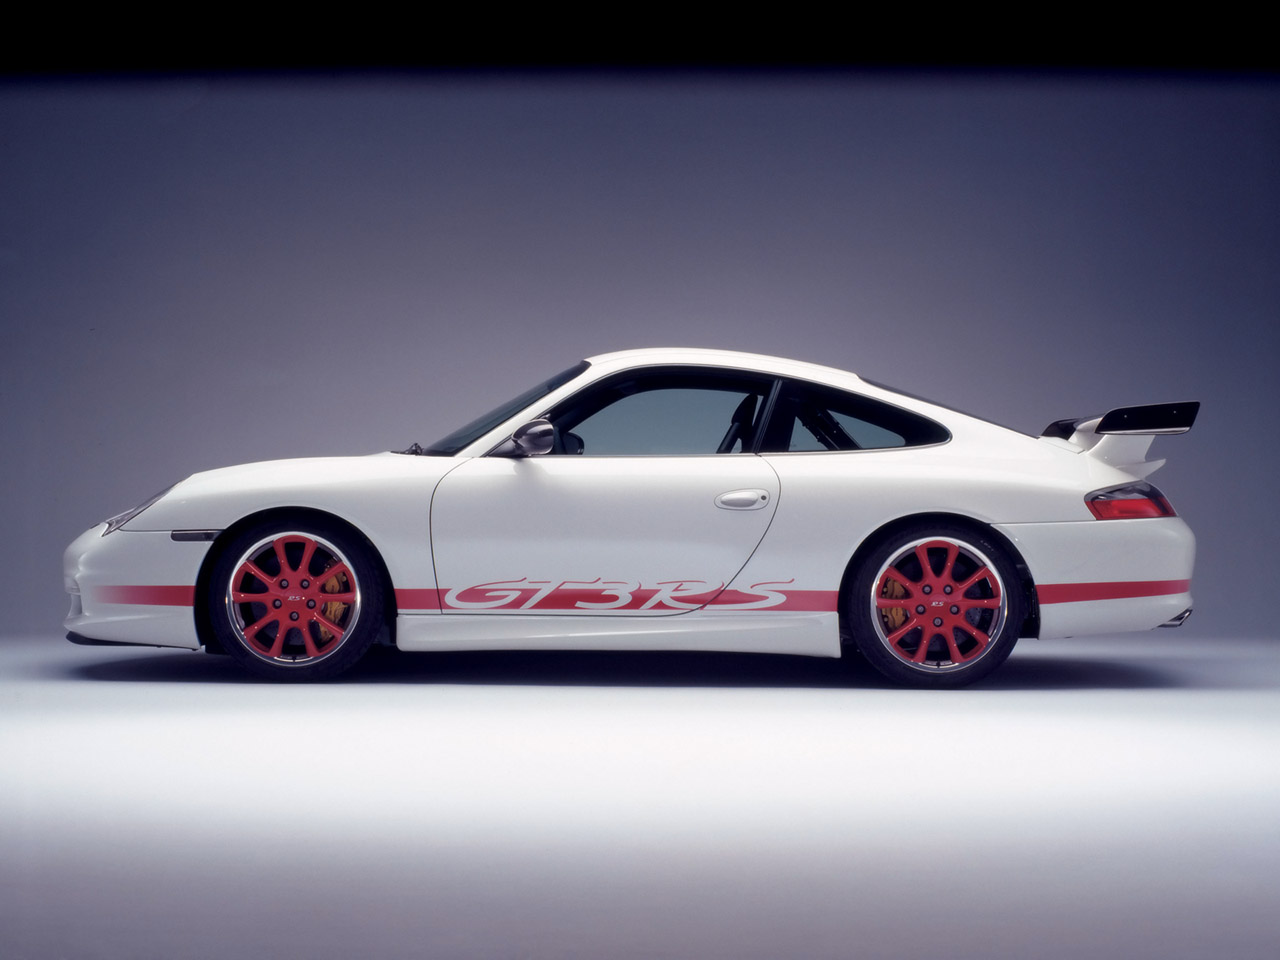 2004 Porsche 911 Gt3 Rs History Pictures Value Auction